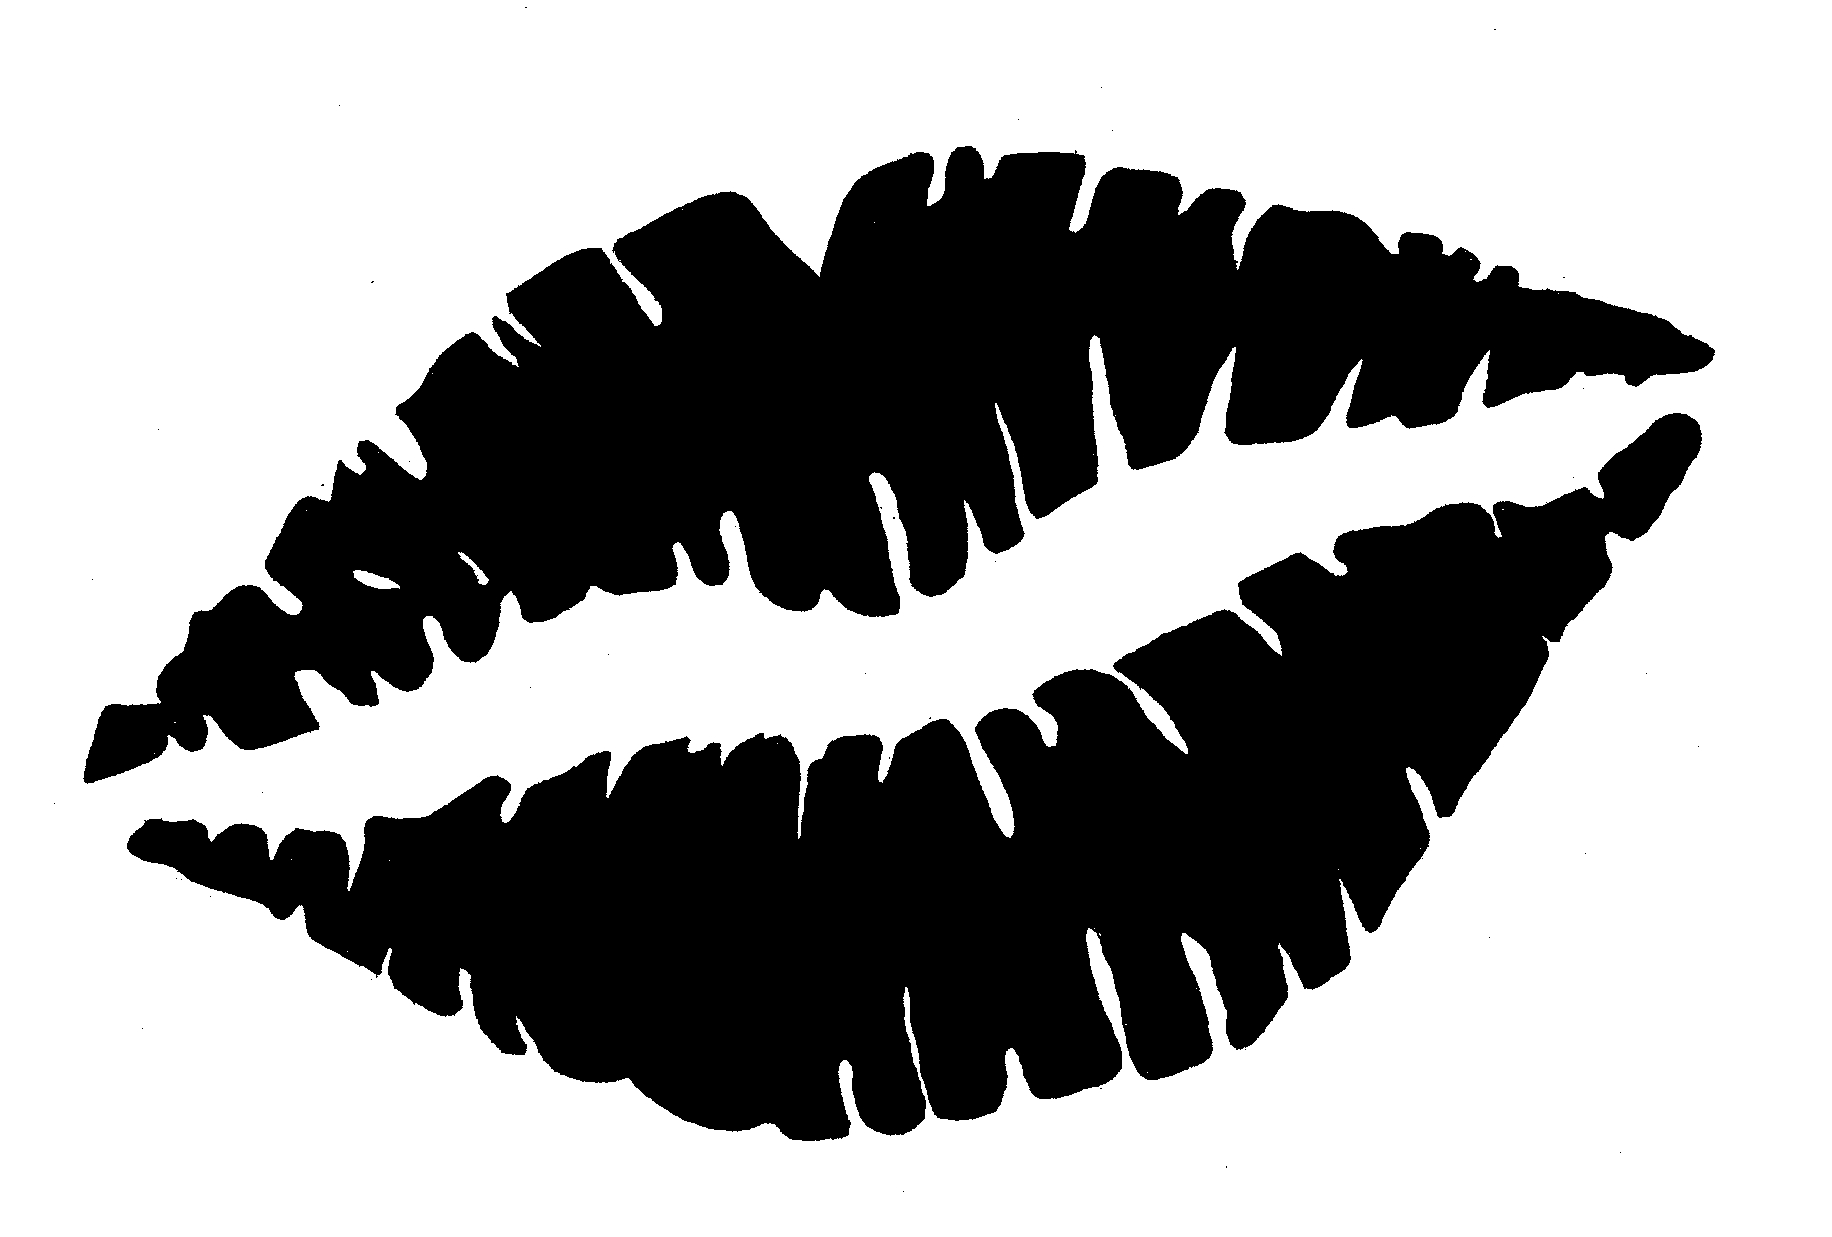 Library Of Kissing Lips Graphic Black And White Stock -3728